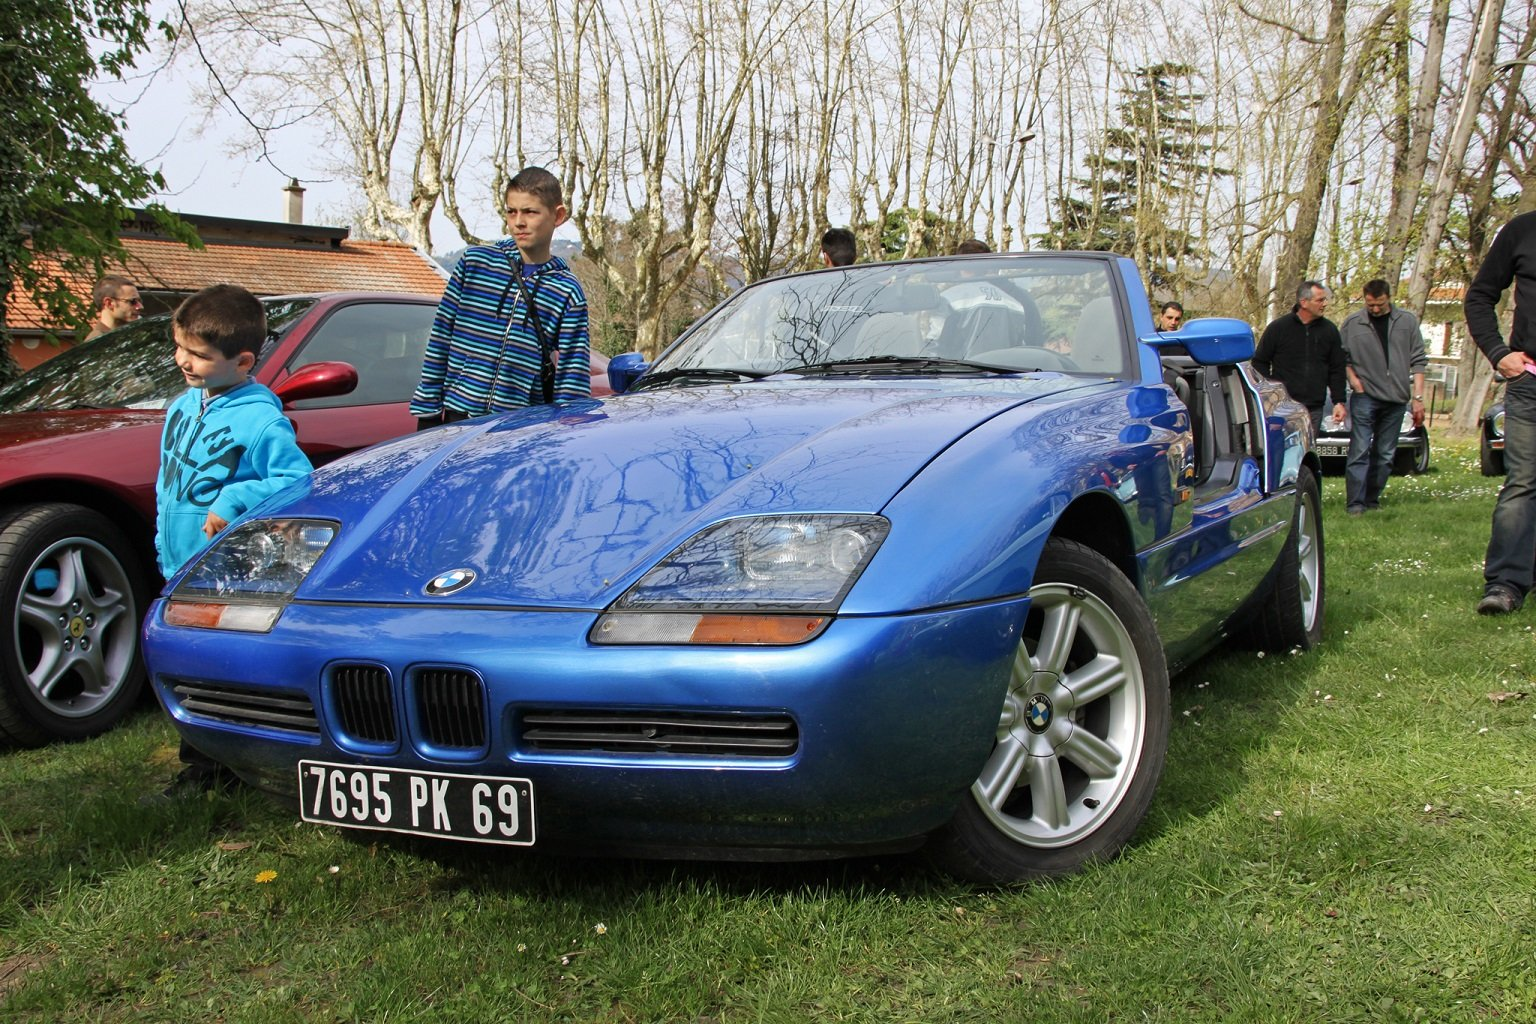 bmw z1 convertible 1988 wallpaper 1536x1024 410868 wallpaperup. Black Bedroom Furniture Sets. Home Design Ideas